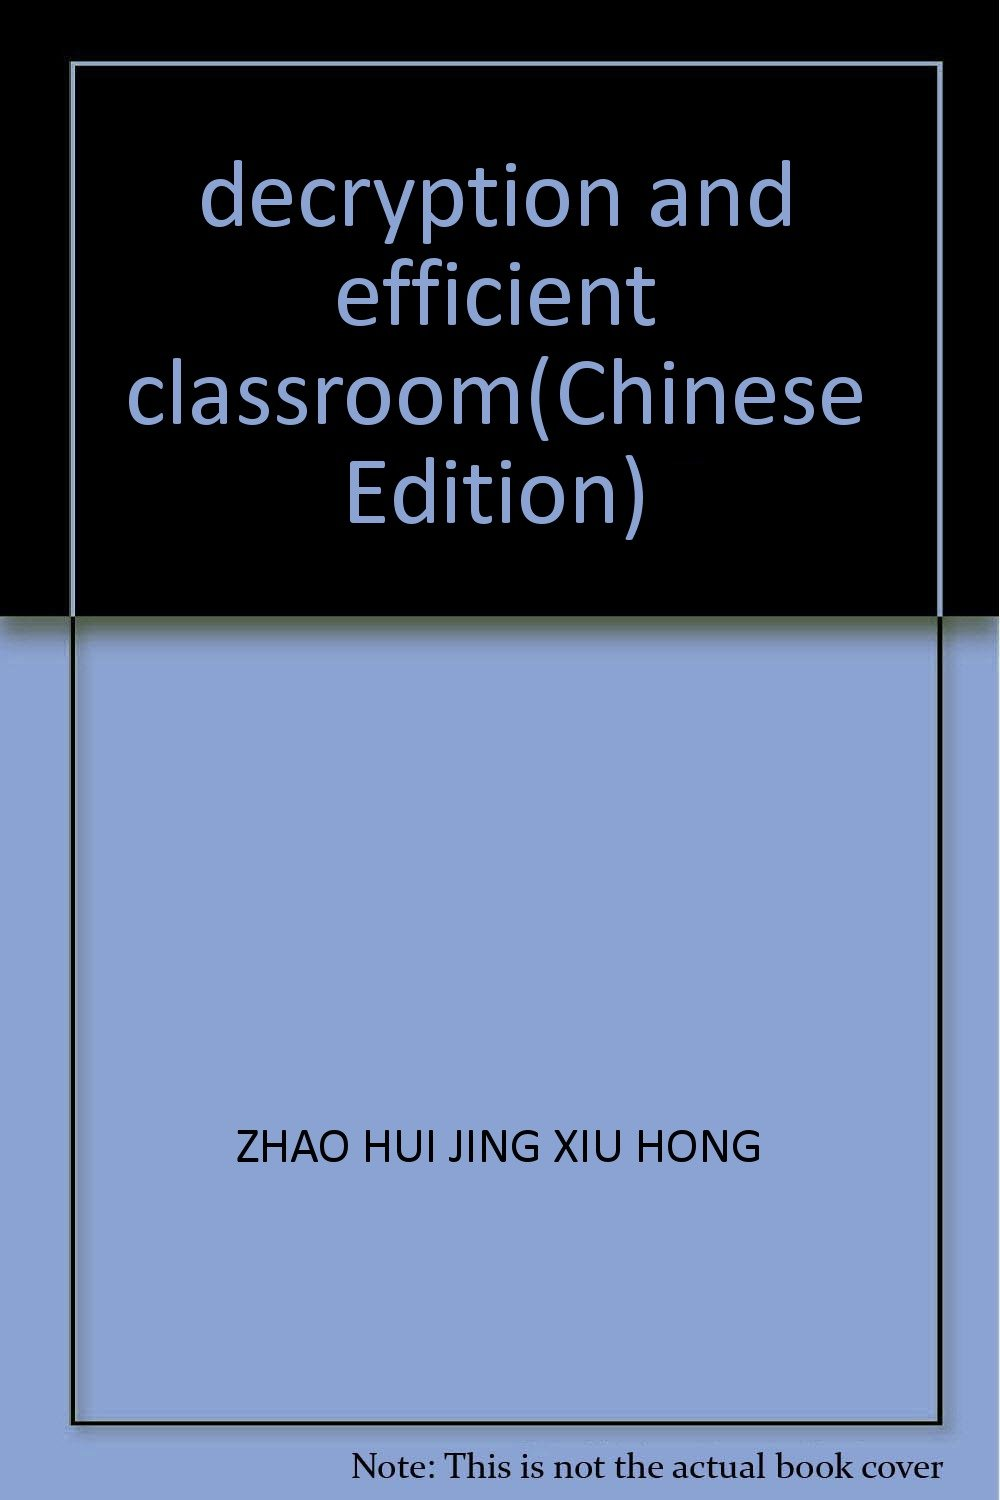 decryption and efficient classroom(Chinese Edition) PDF